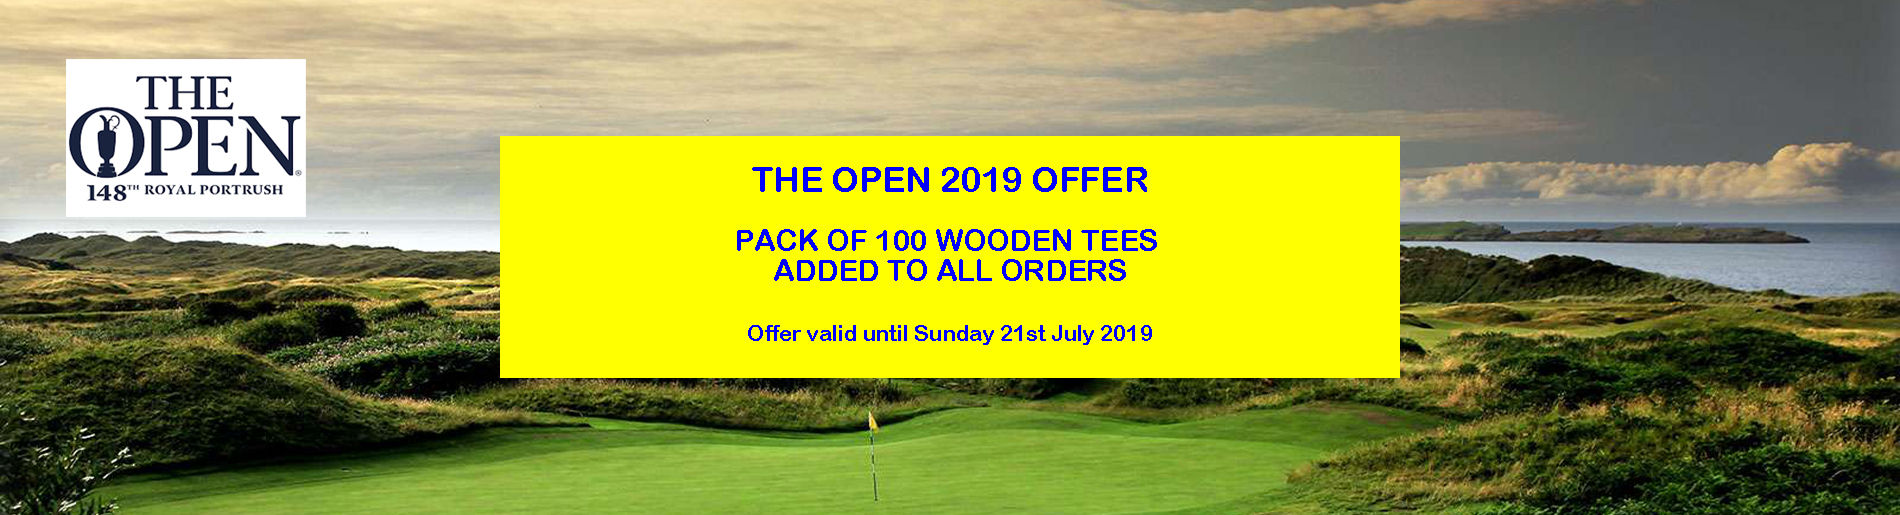 The Open 2019 Free Tees Offer